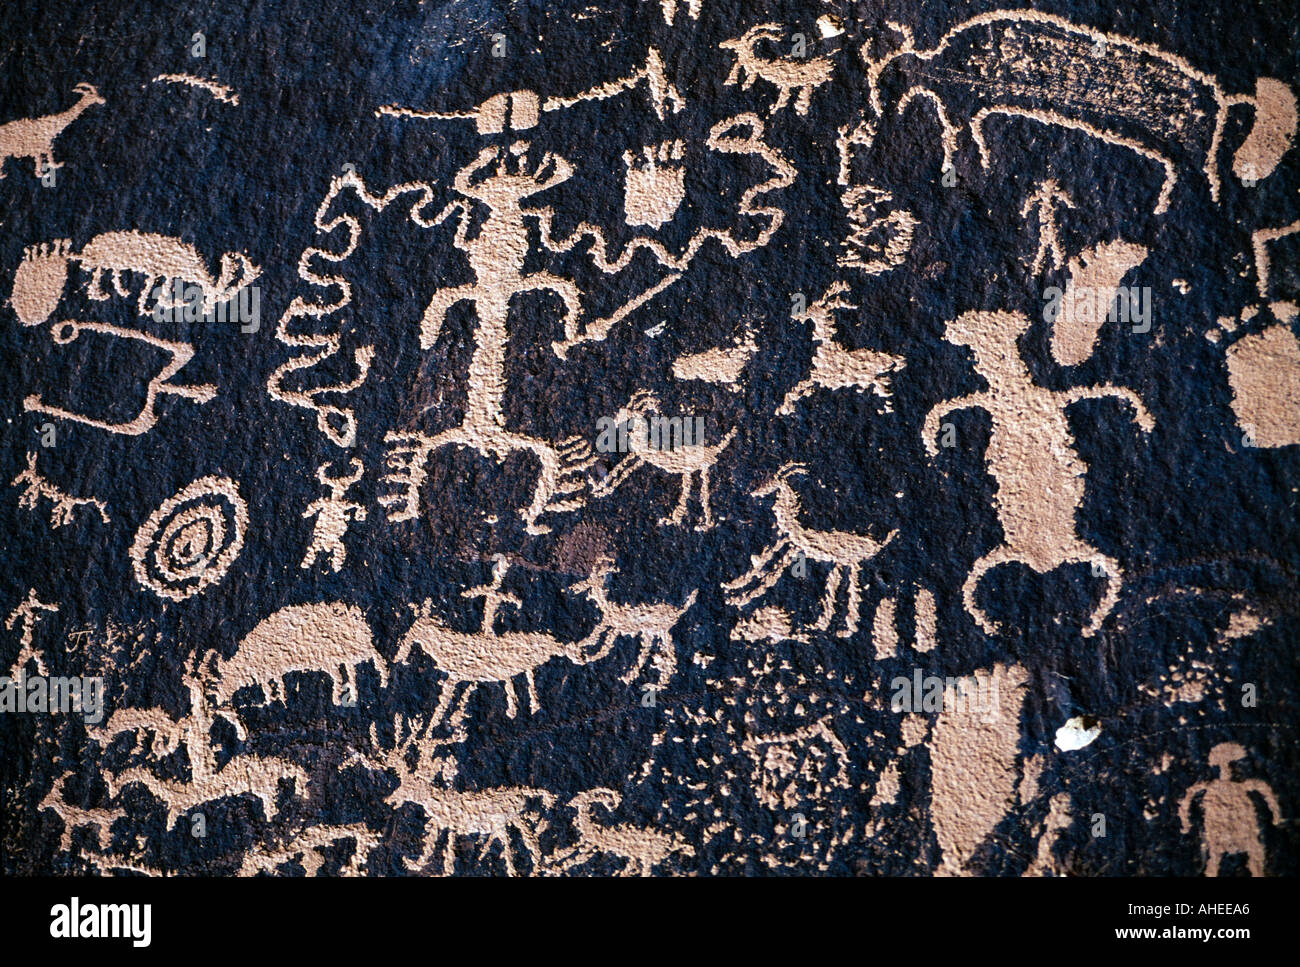 United States of America, Utah, Canyonlands National Park, Anasazi Indian Rock Petroglyphs, Newspaper Rock - Stock Image